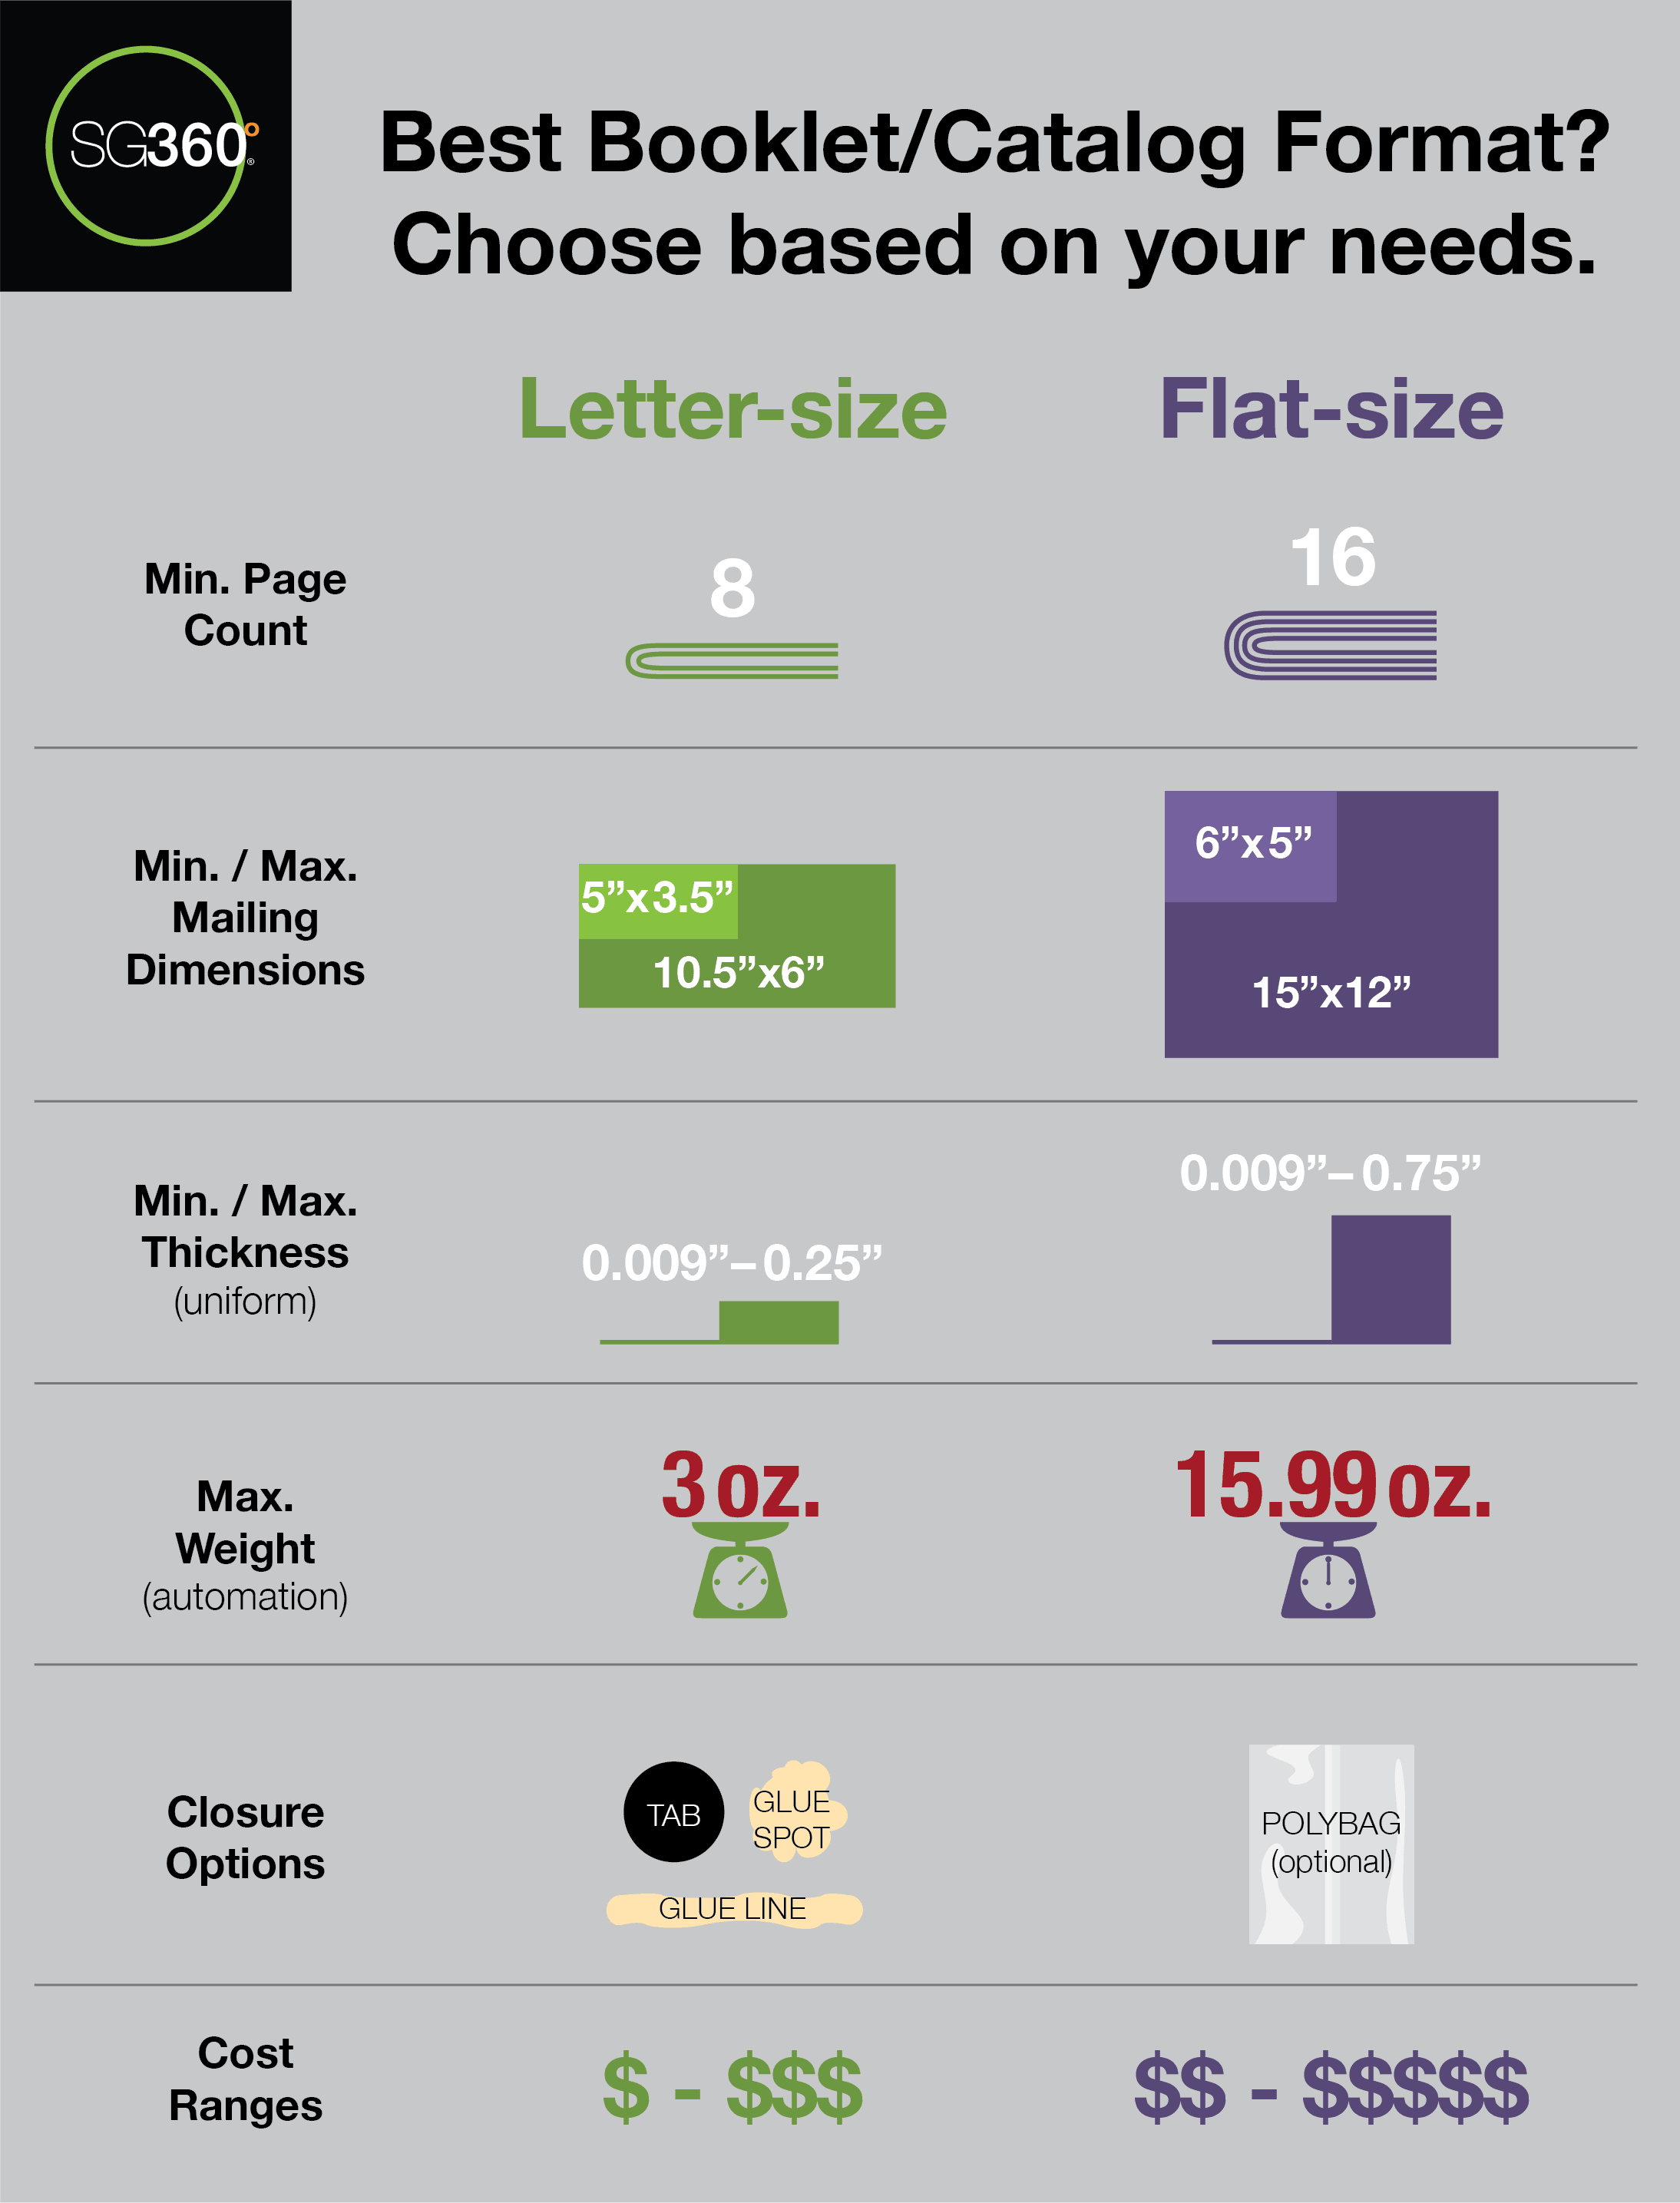 Comparing letter and flat-size direct mail booklets